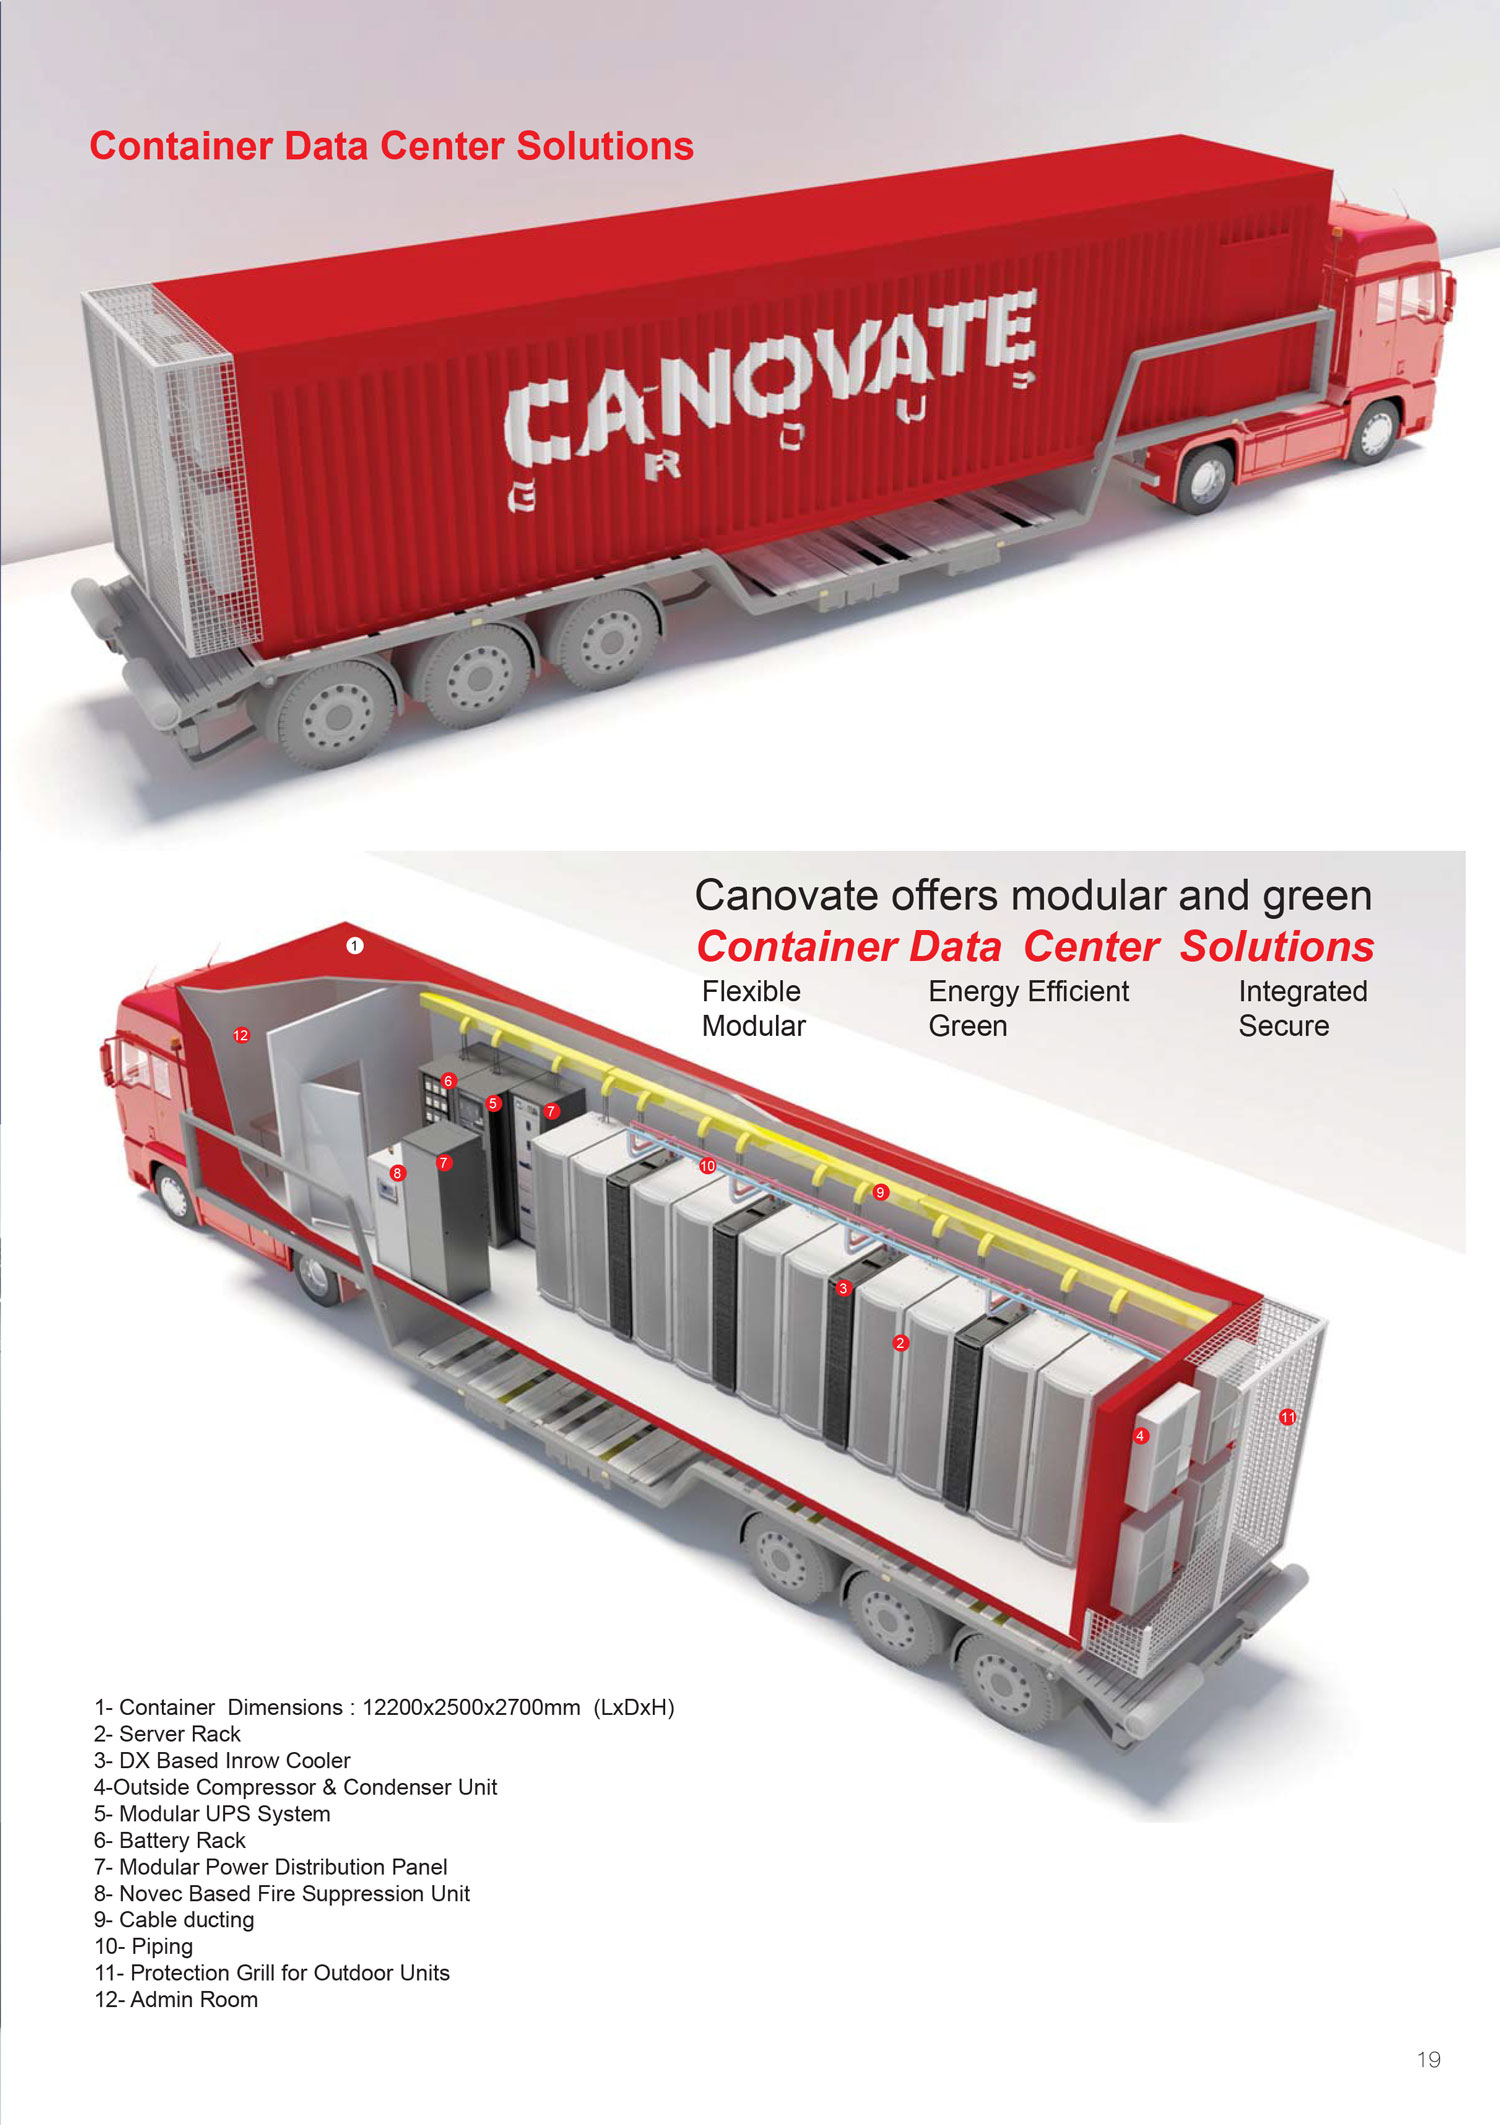 Container-Datacenter-3D-Drawing-by-Huseyin-Durak